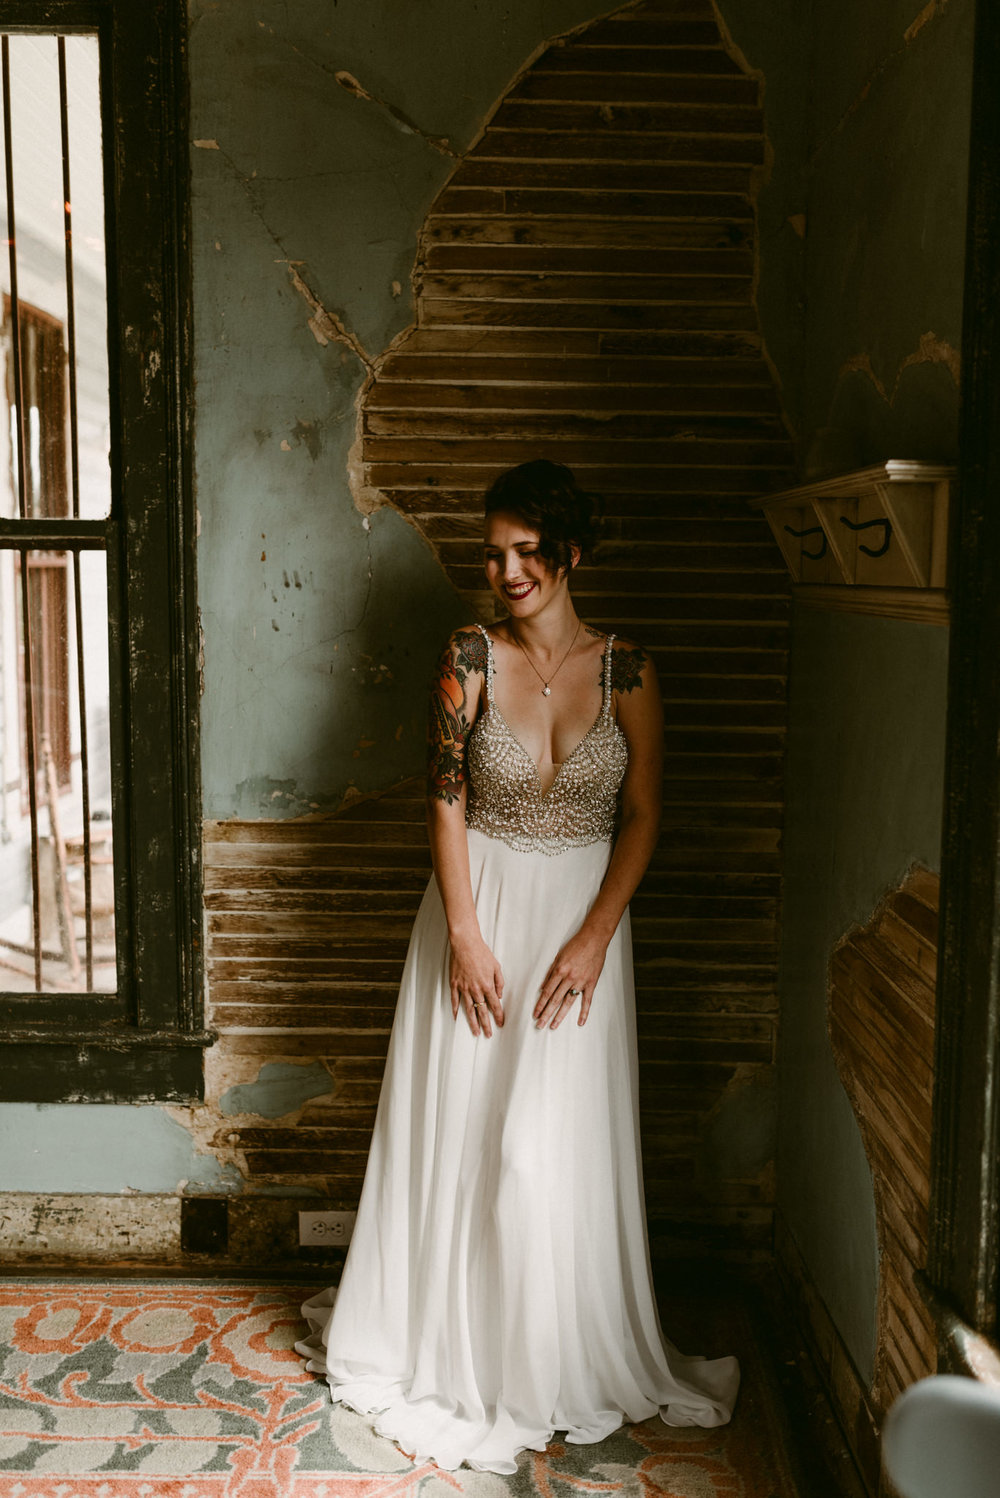 Lustre-Pearl-East-Austin-Texas-Bohemian-Floral-Greenery-Macrame-Desert-Elopement-Enchanted-Rock-Natural-Park-Kerlyn-Van-Gelder-Photography-Austin-Wedding-Photographer